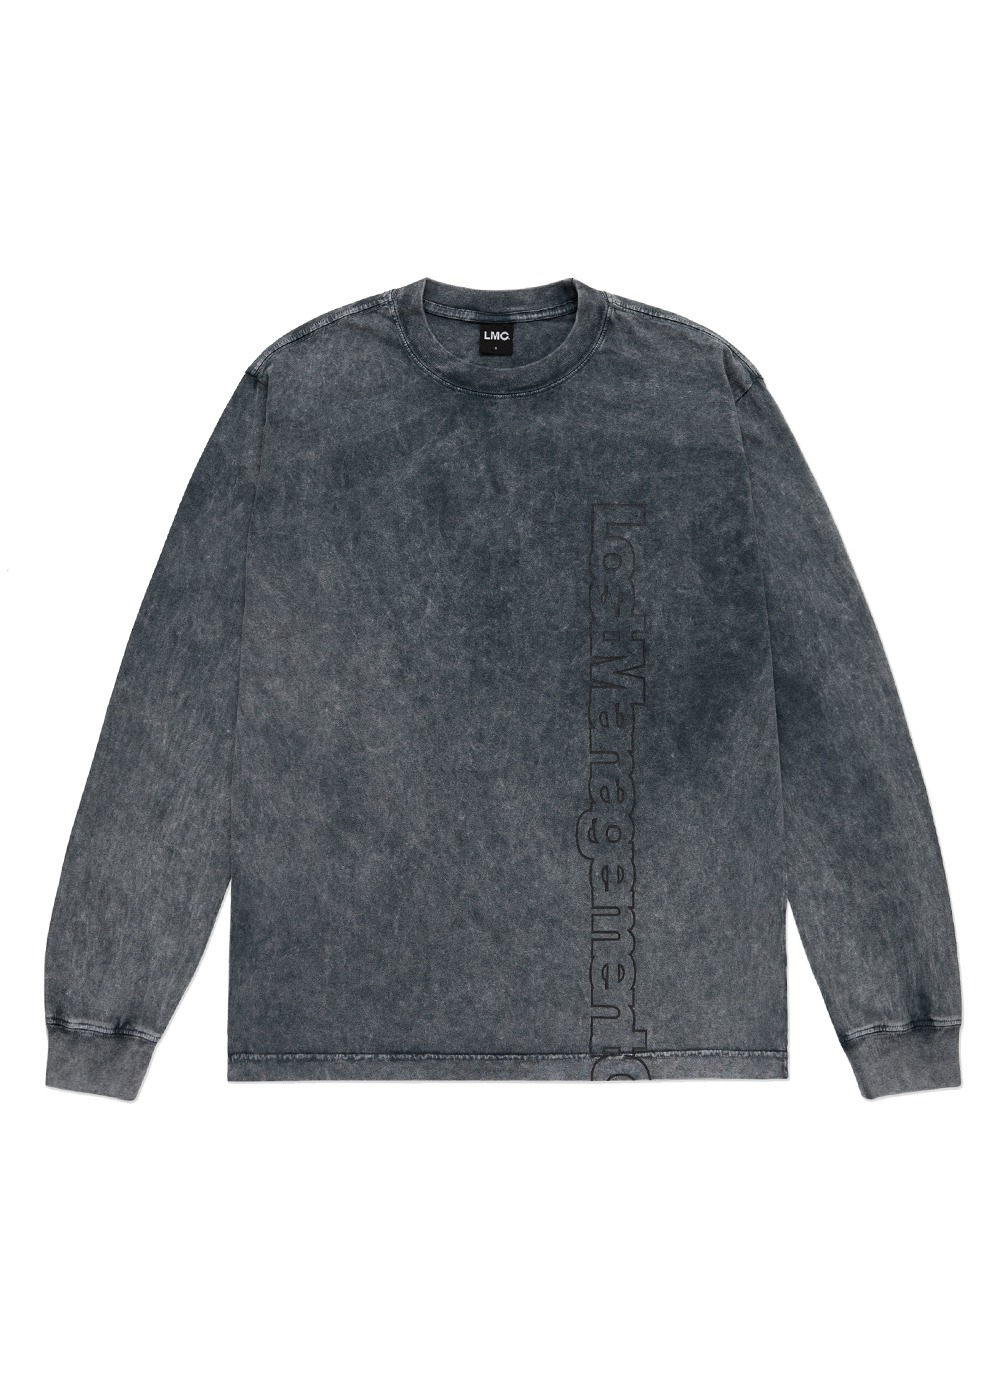 LMC ACID WASHED VERTICAL FN LONG SLV TEE black